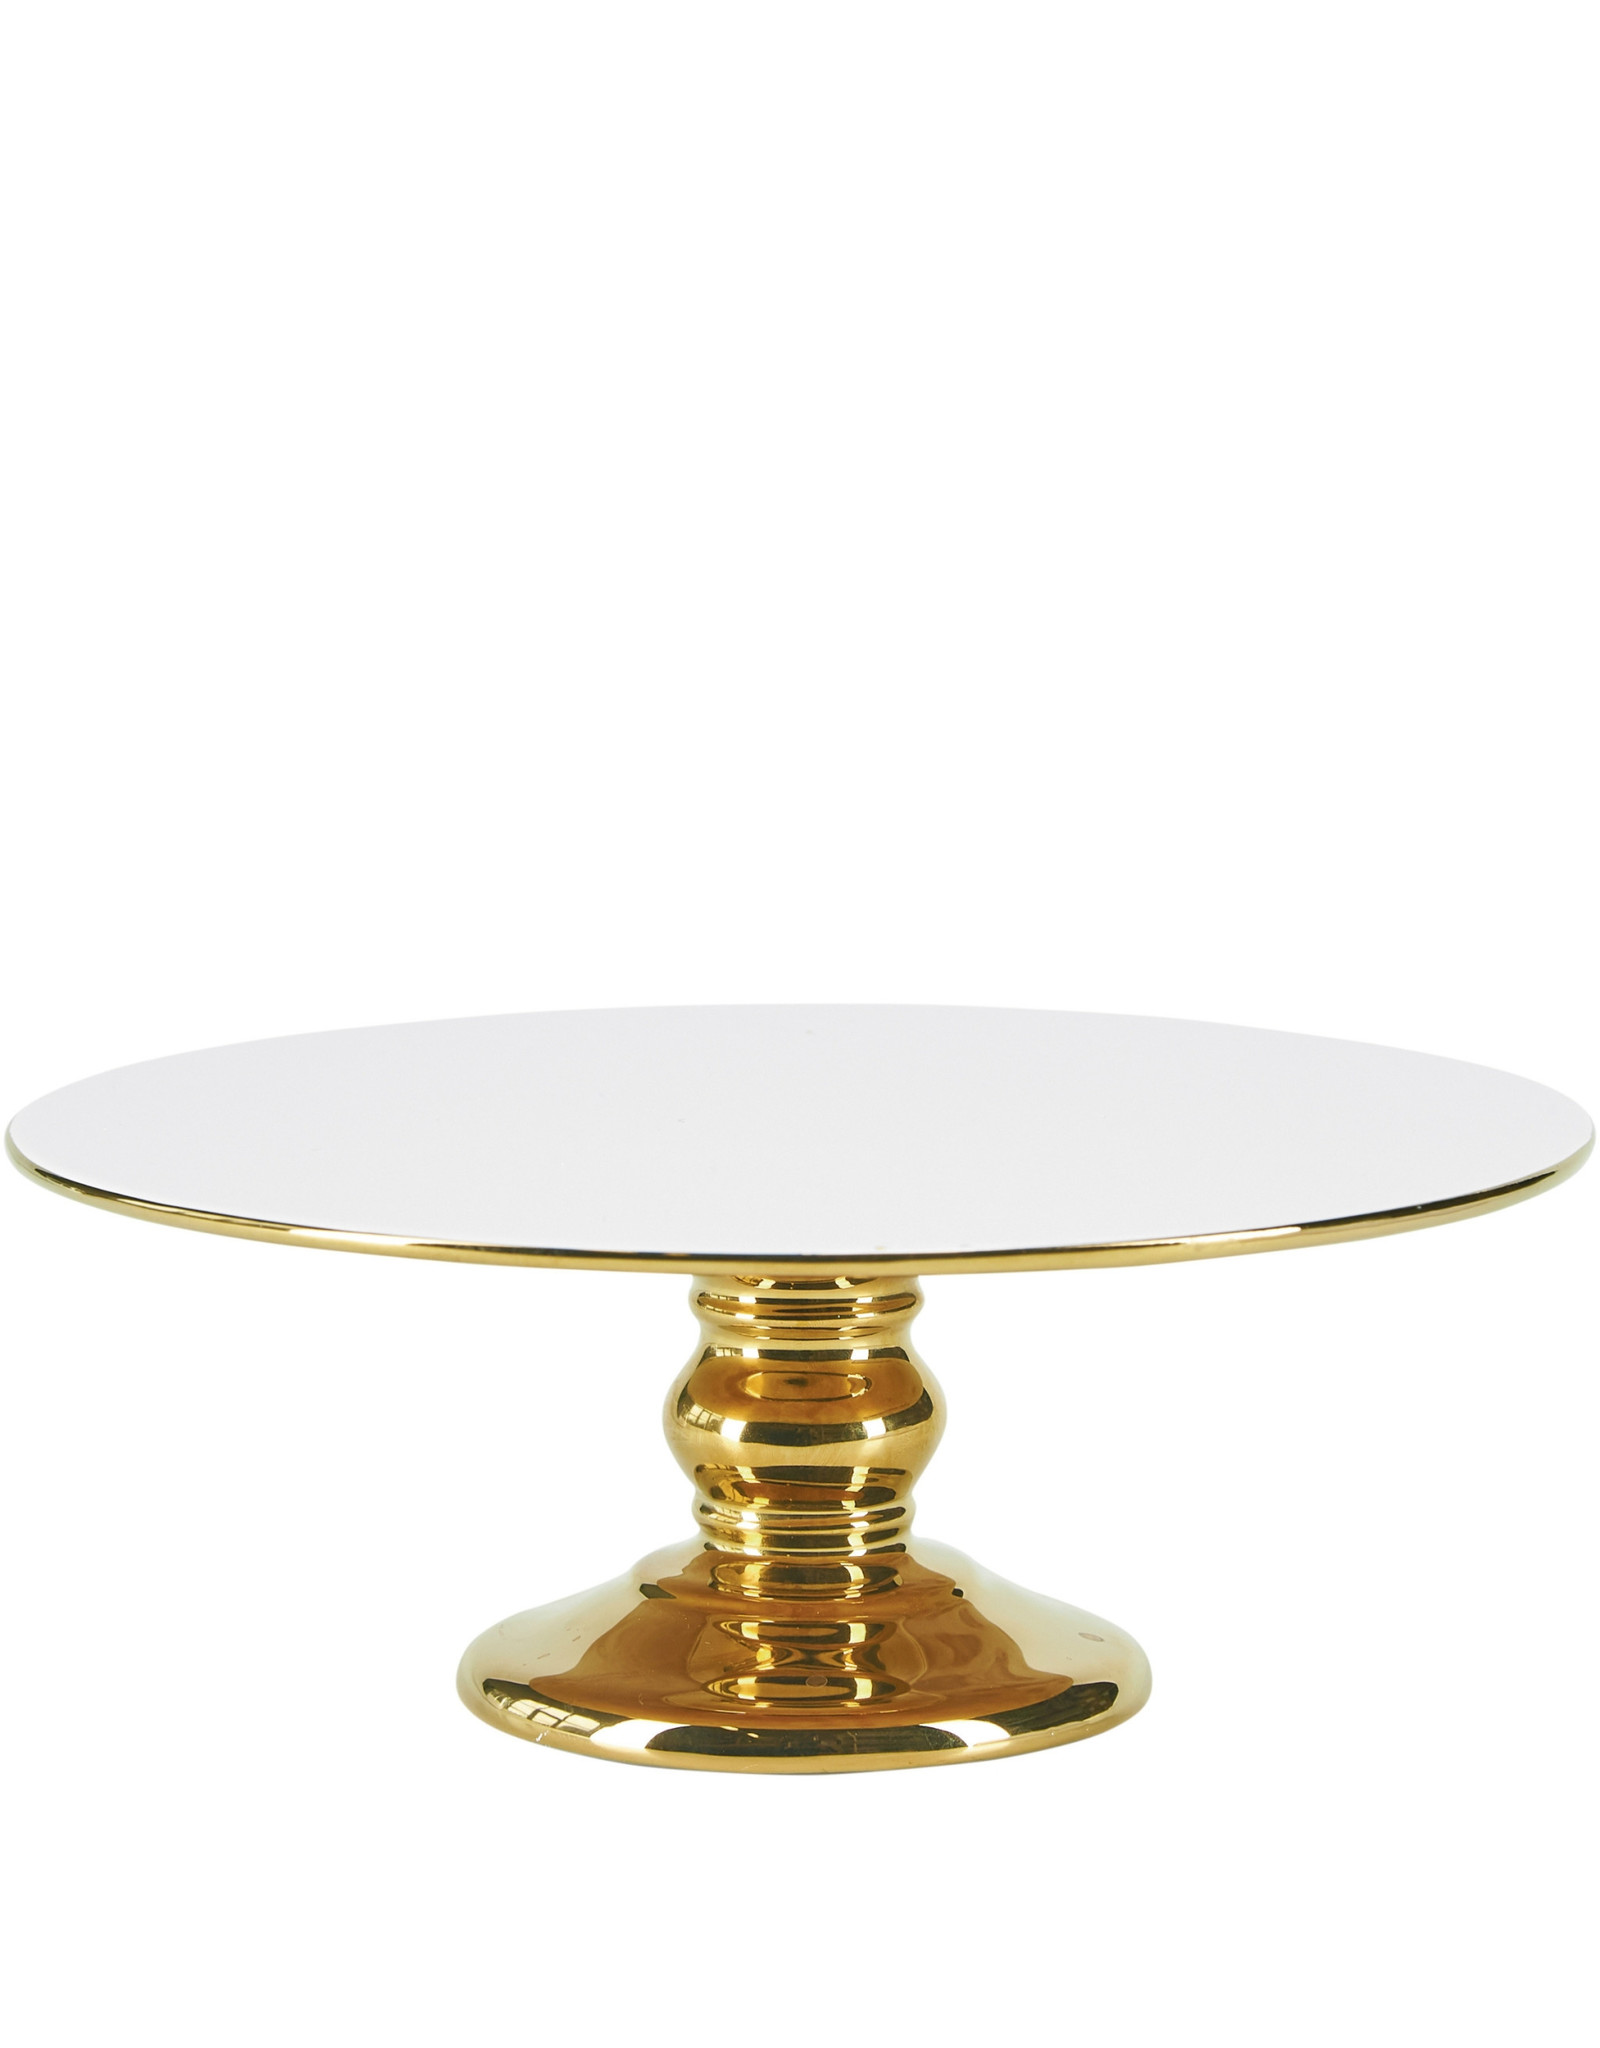 Miss Etoile Cakestand - Goud & Wit - Large